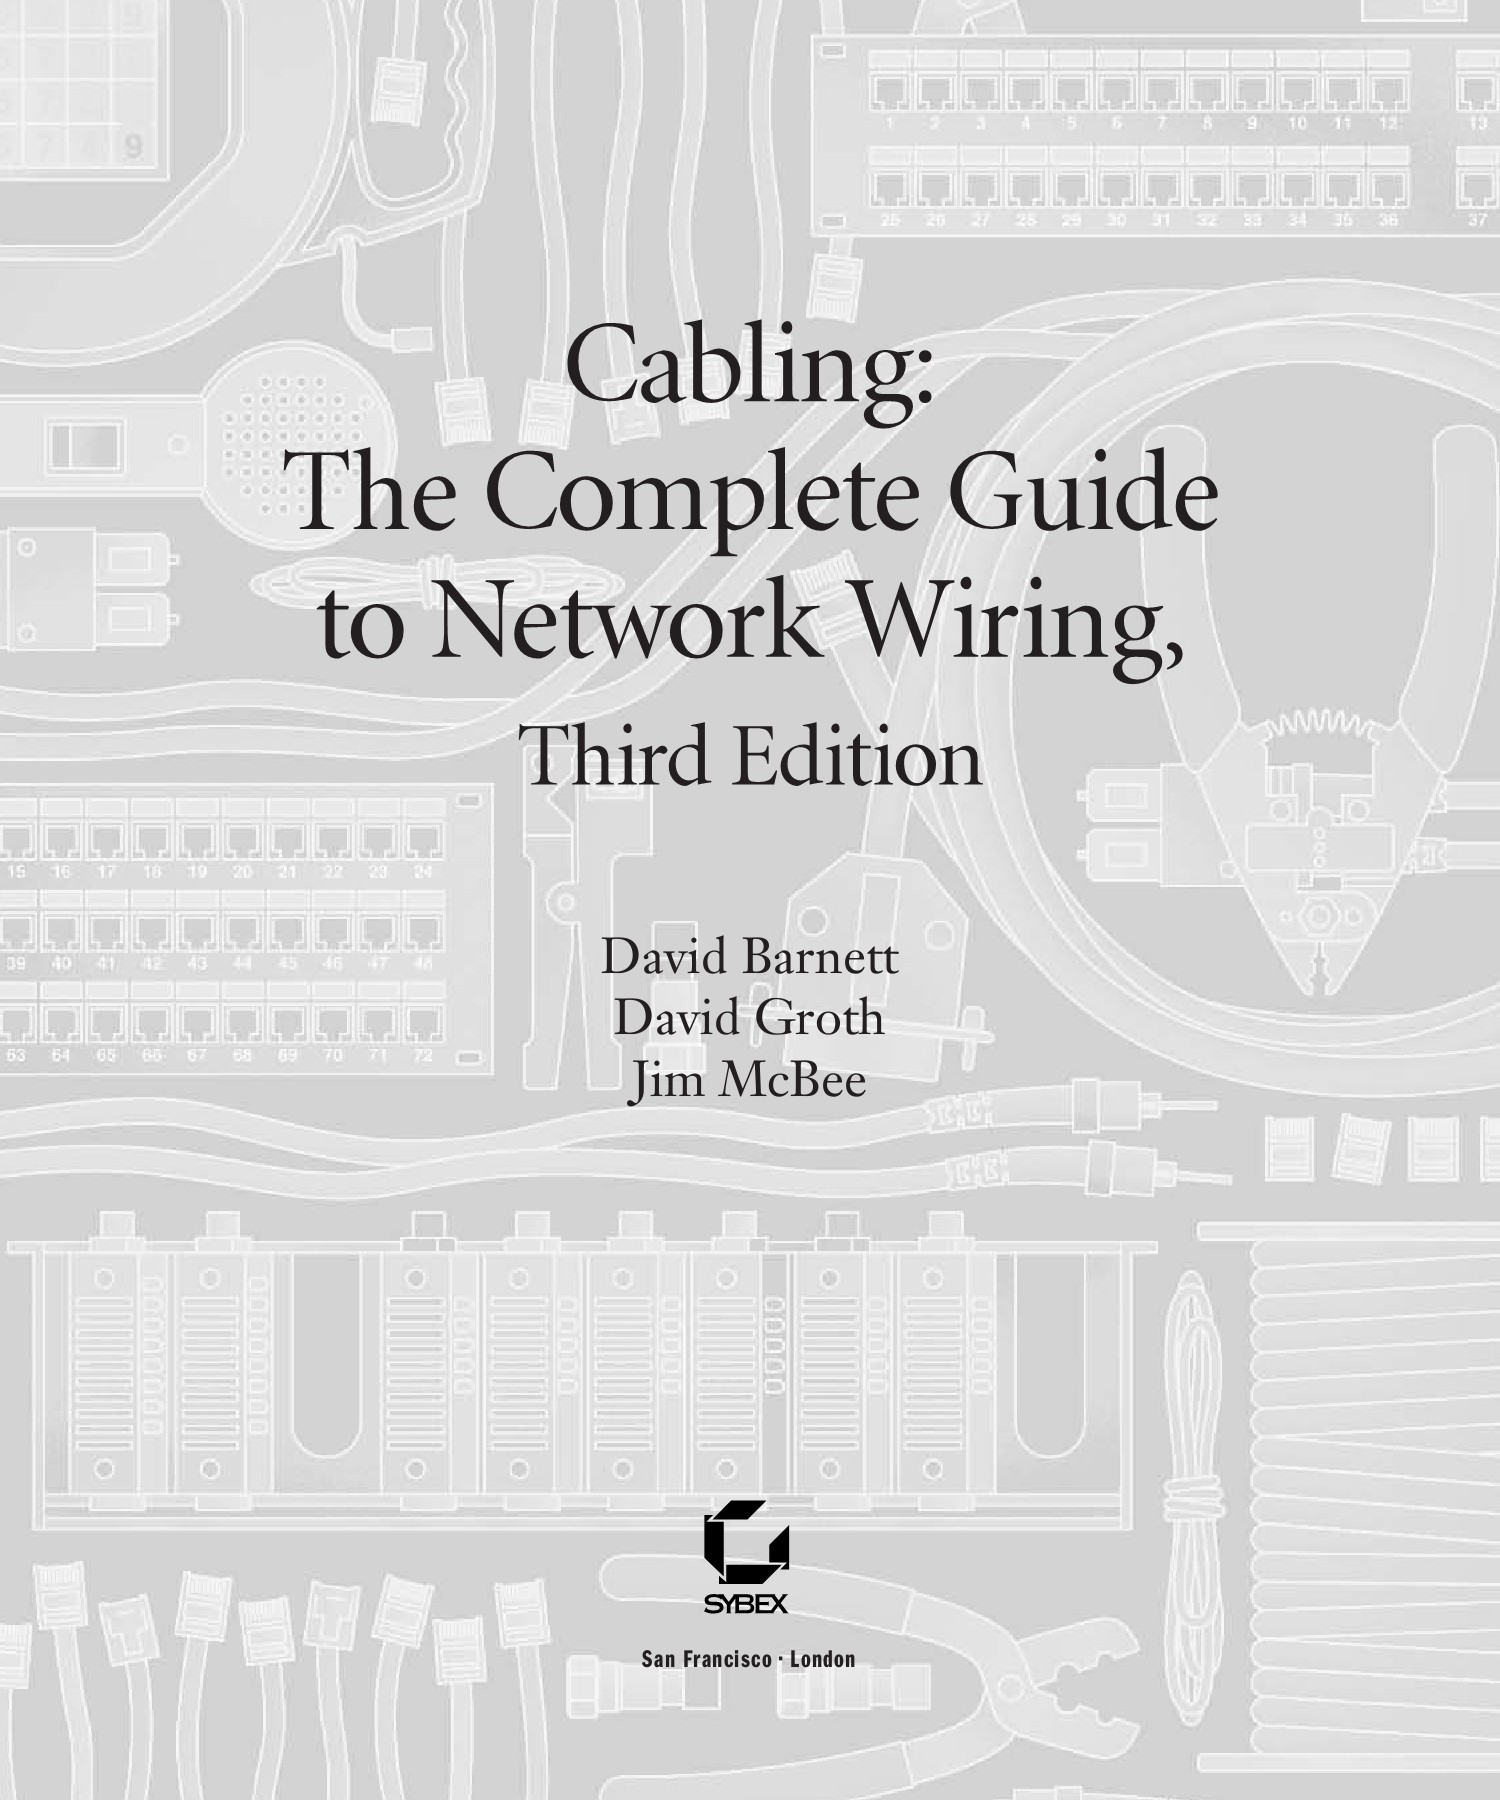 hight resolution of cabling the complete guide to network wiring 3rd edition jul 2004 sybex